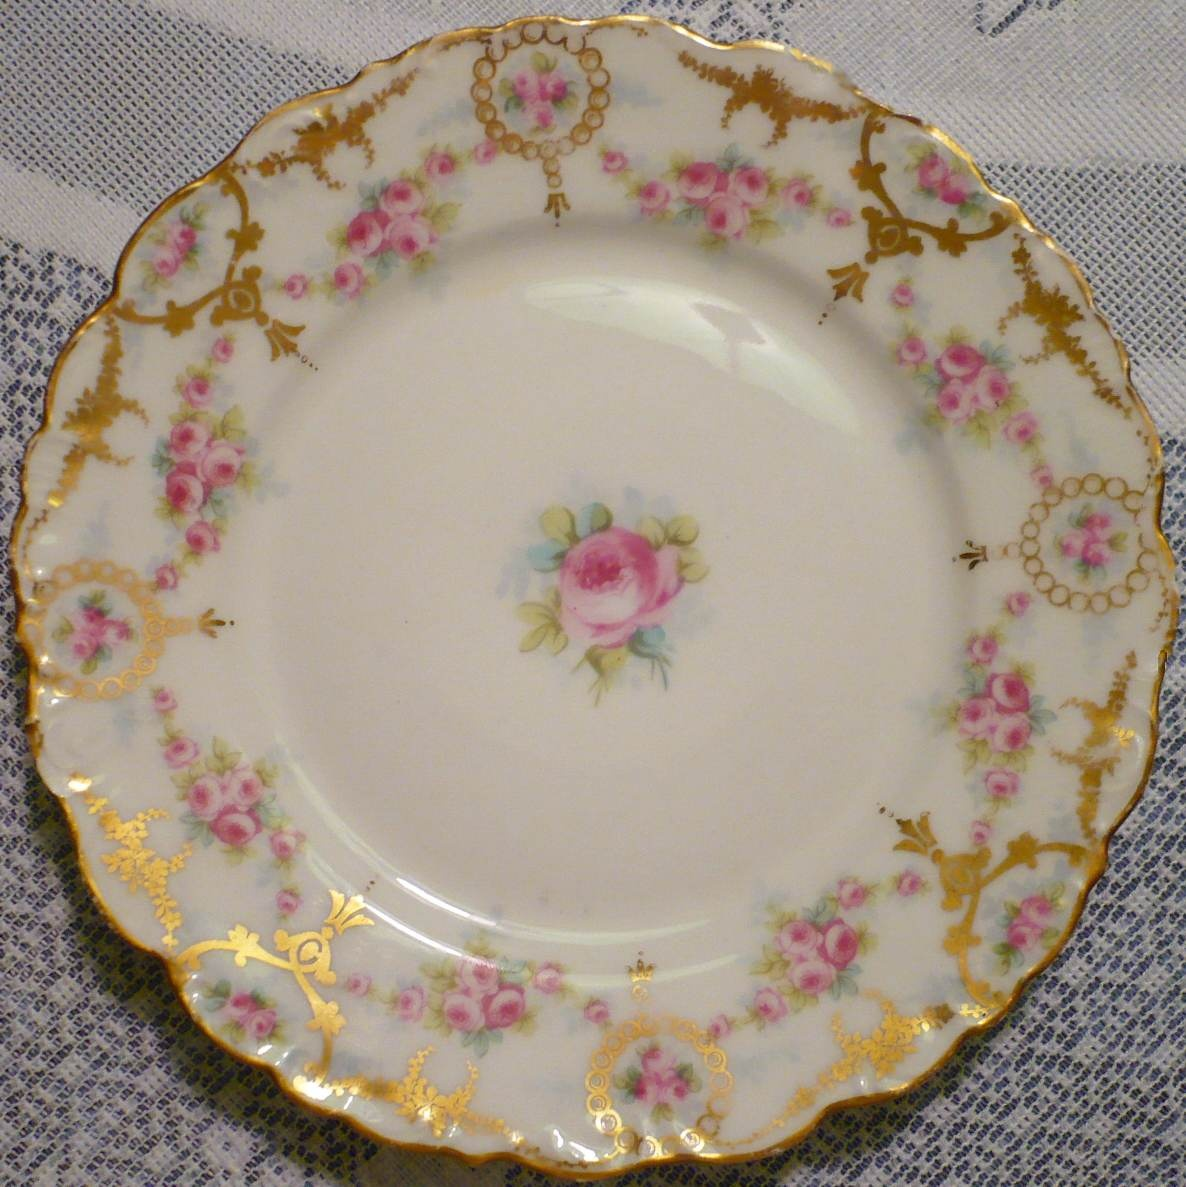 How to Identify Antique Dinnerware advise